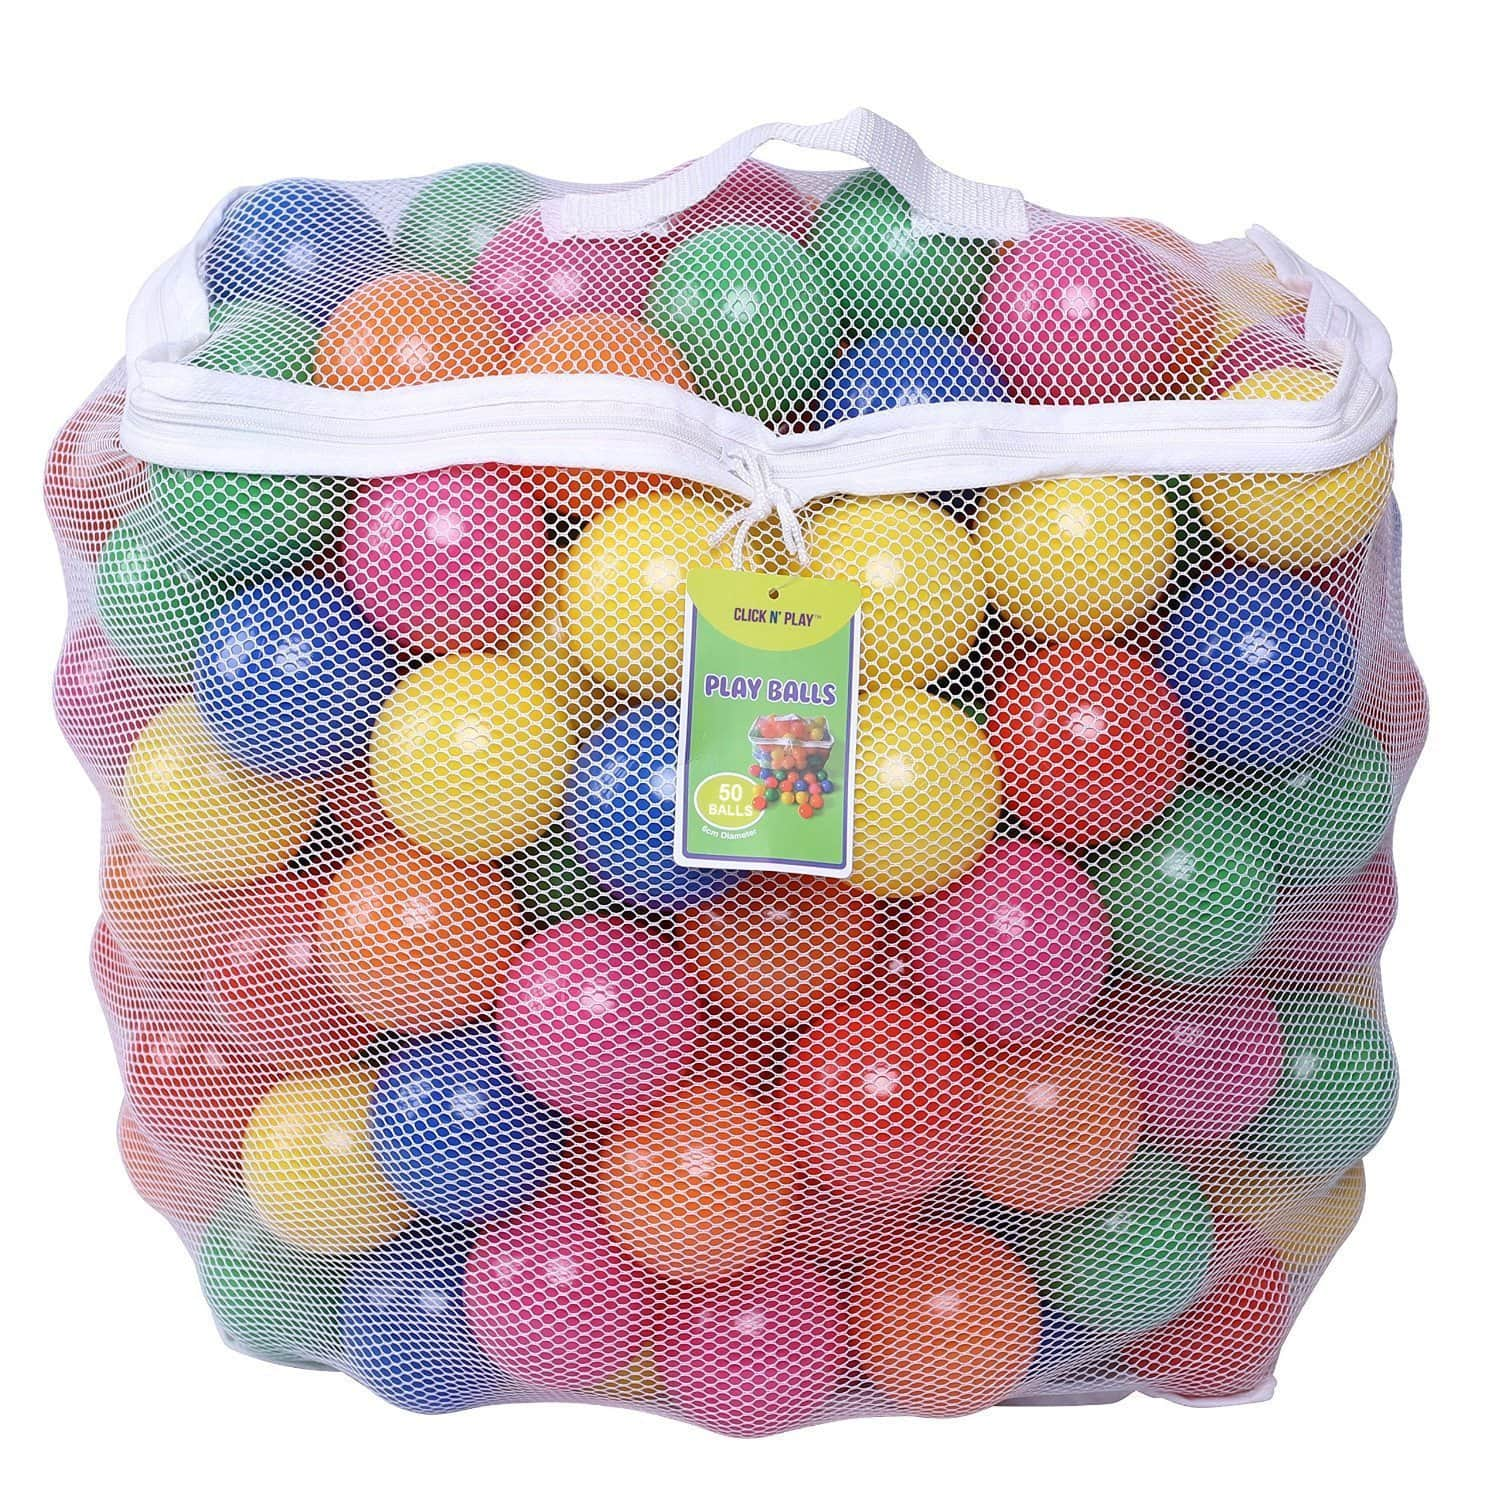 Click N' Play Pack of 50 Phthalate Free BPA Free Crush Proof Plastic Ball, Pit Balls - 6 Bright Colors in Reusable and Durable Storage Mesh Bag with Zipper $7.99